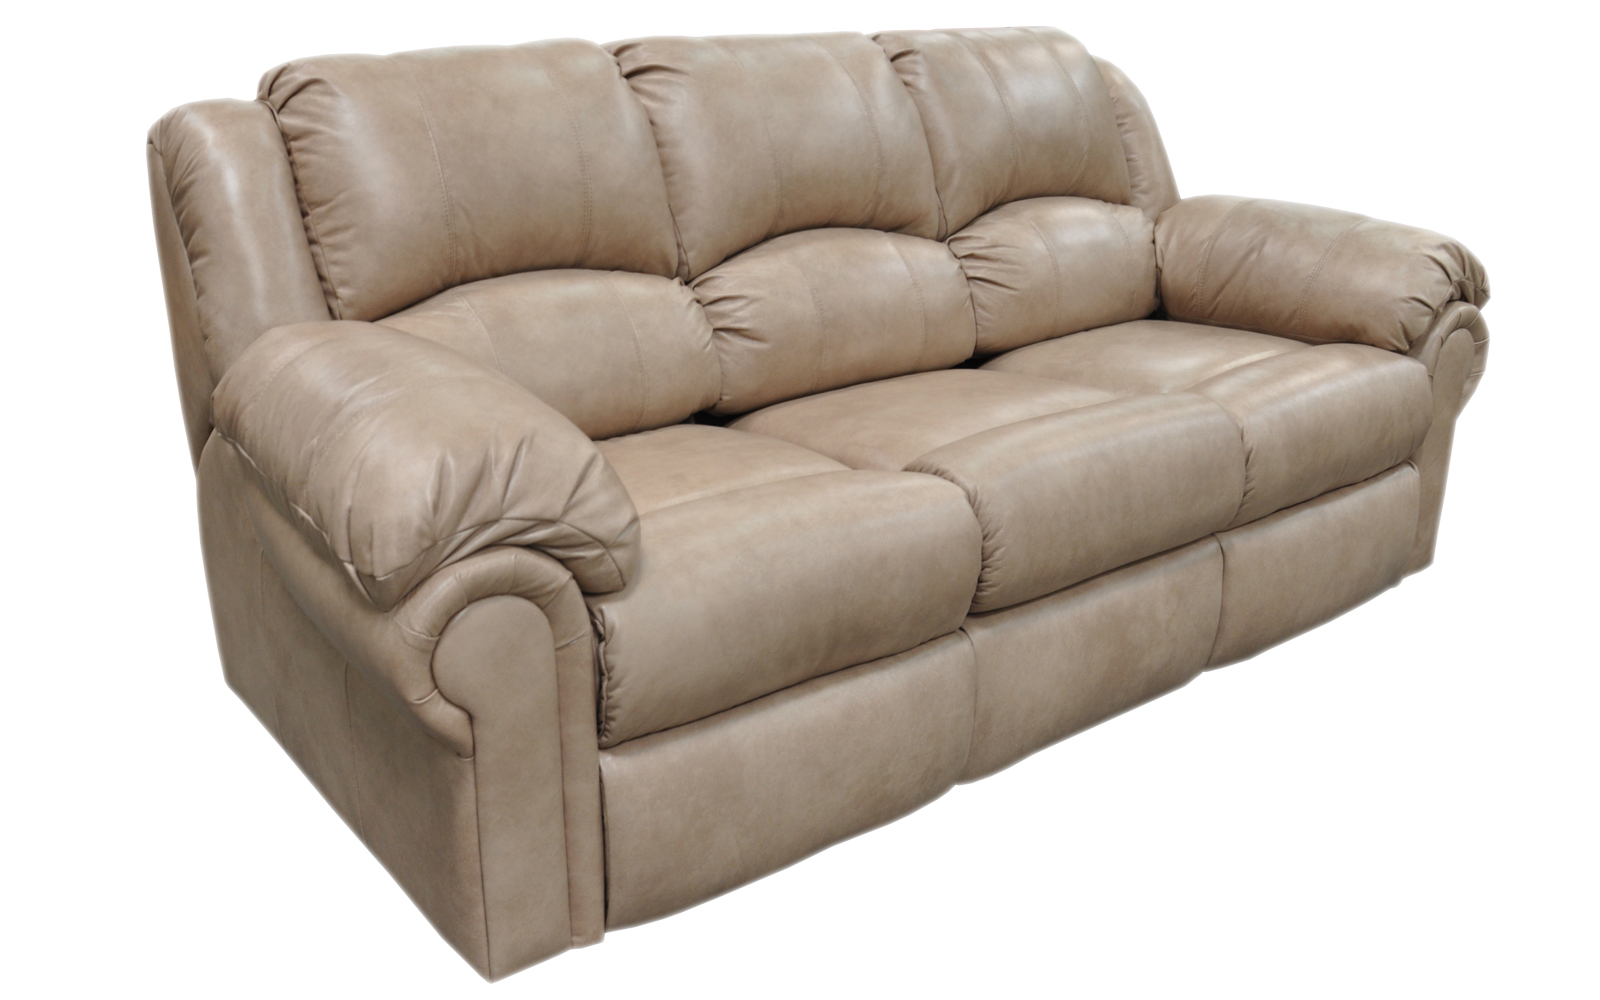 Arizona leather sofa abbyson living arizona leather sofa for Arizona leather sectional sofa with chaise